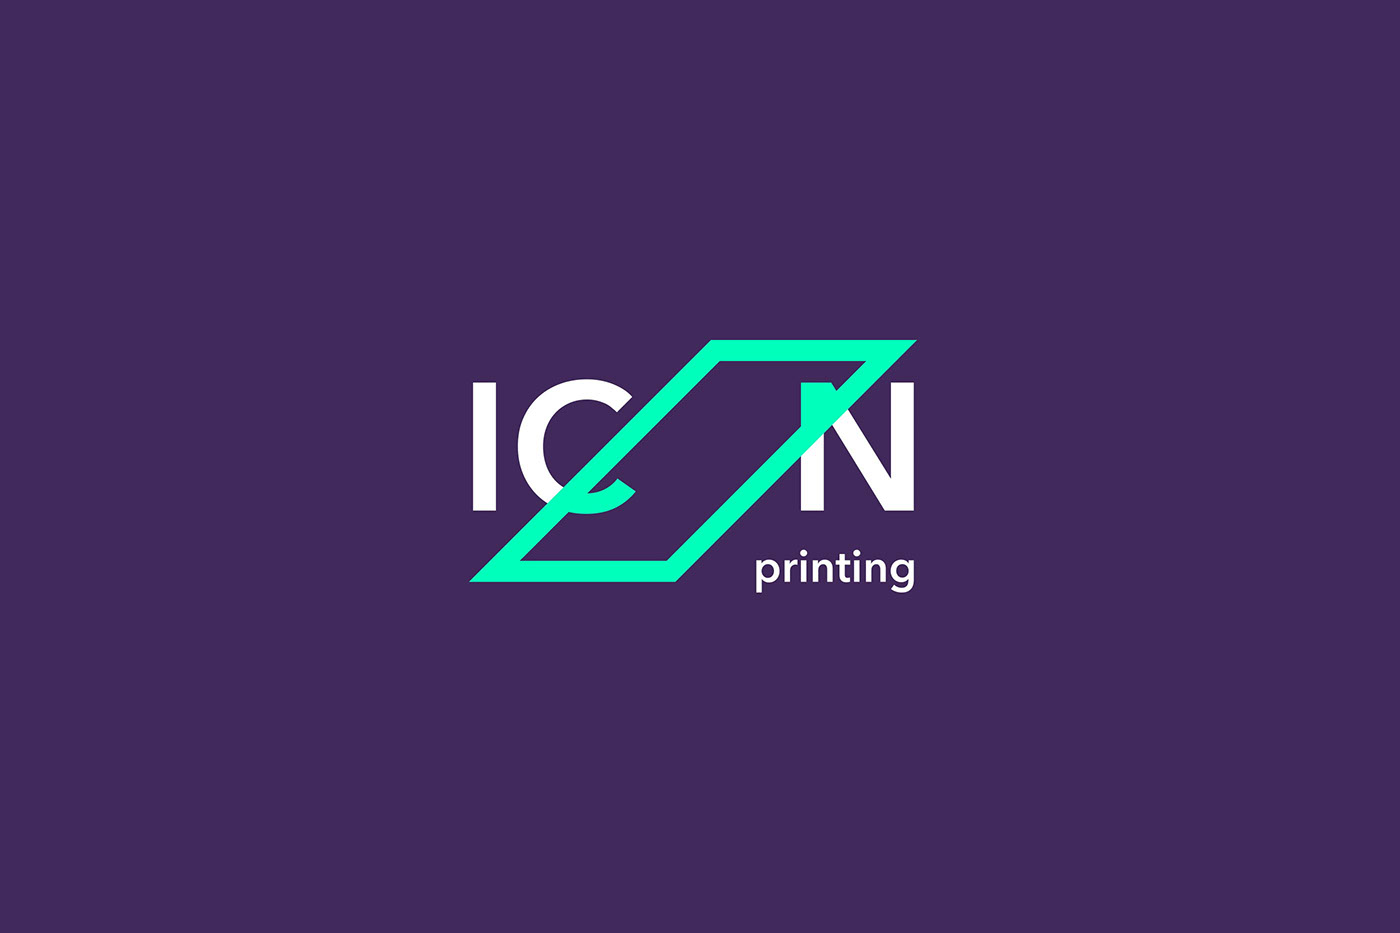 ICON Printing strategic rebrand programme — coming soon